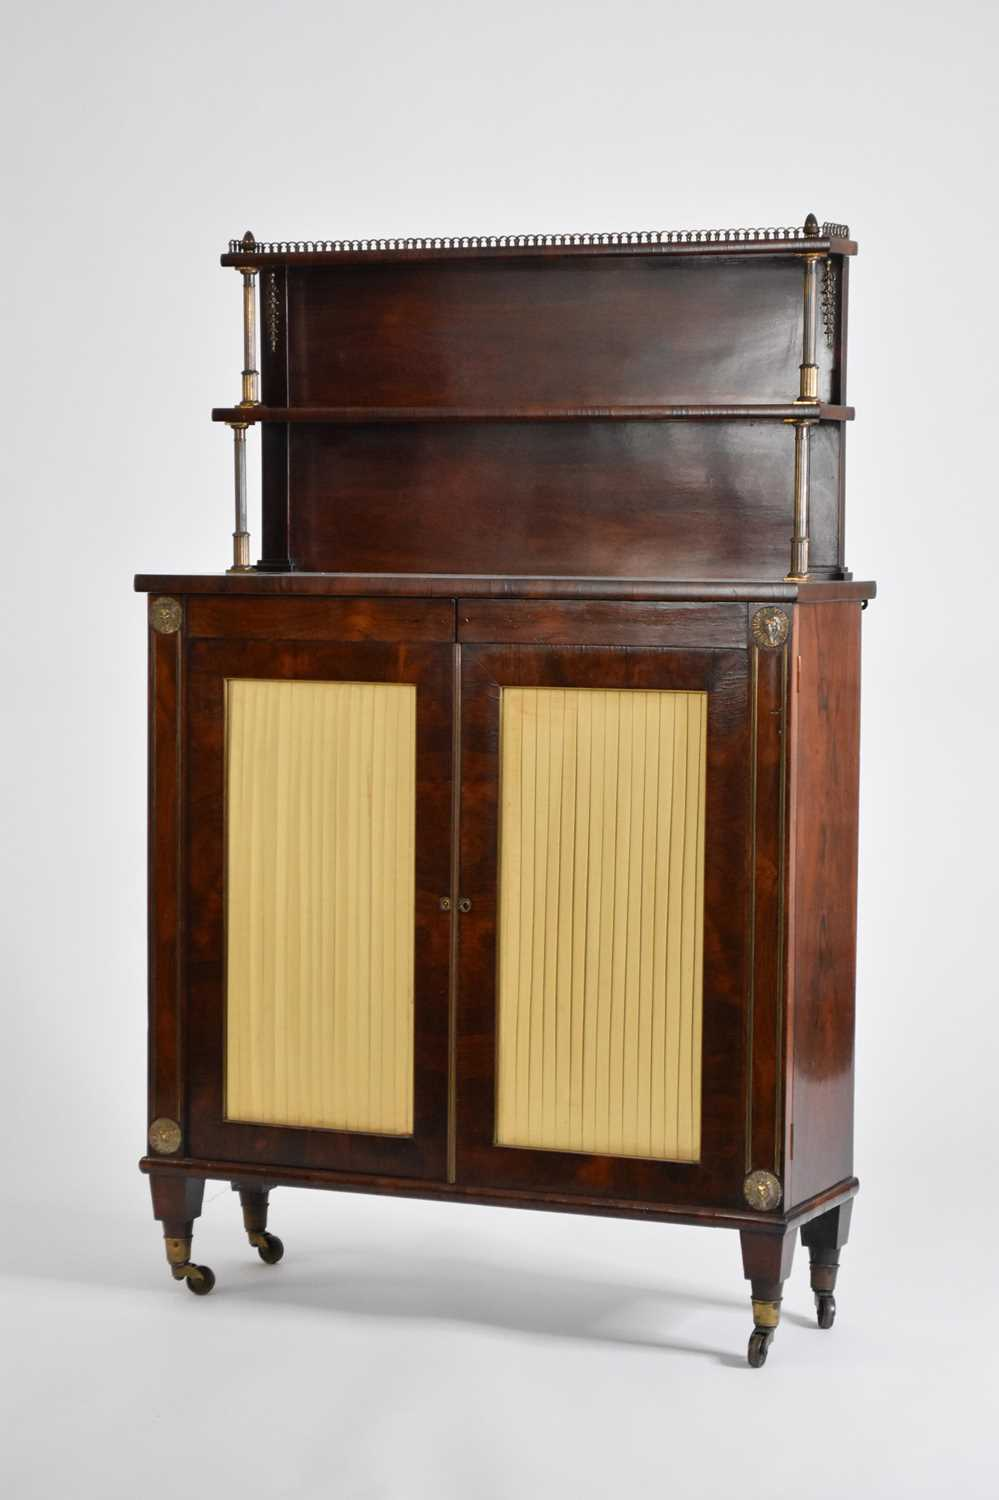 An early 19th century rosewood veneered bookcase - Image 2 of 2